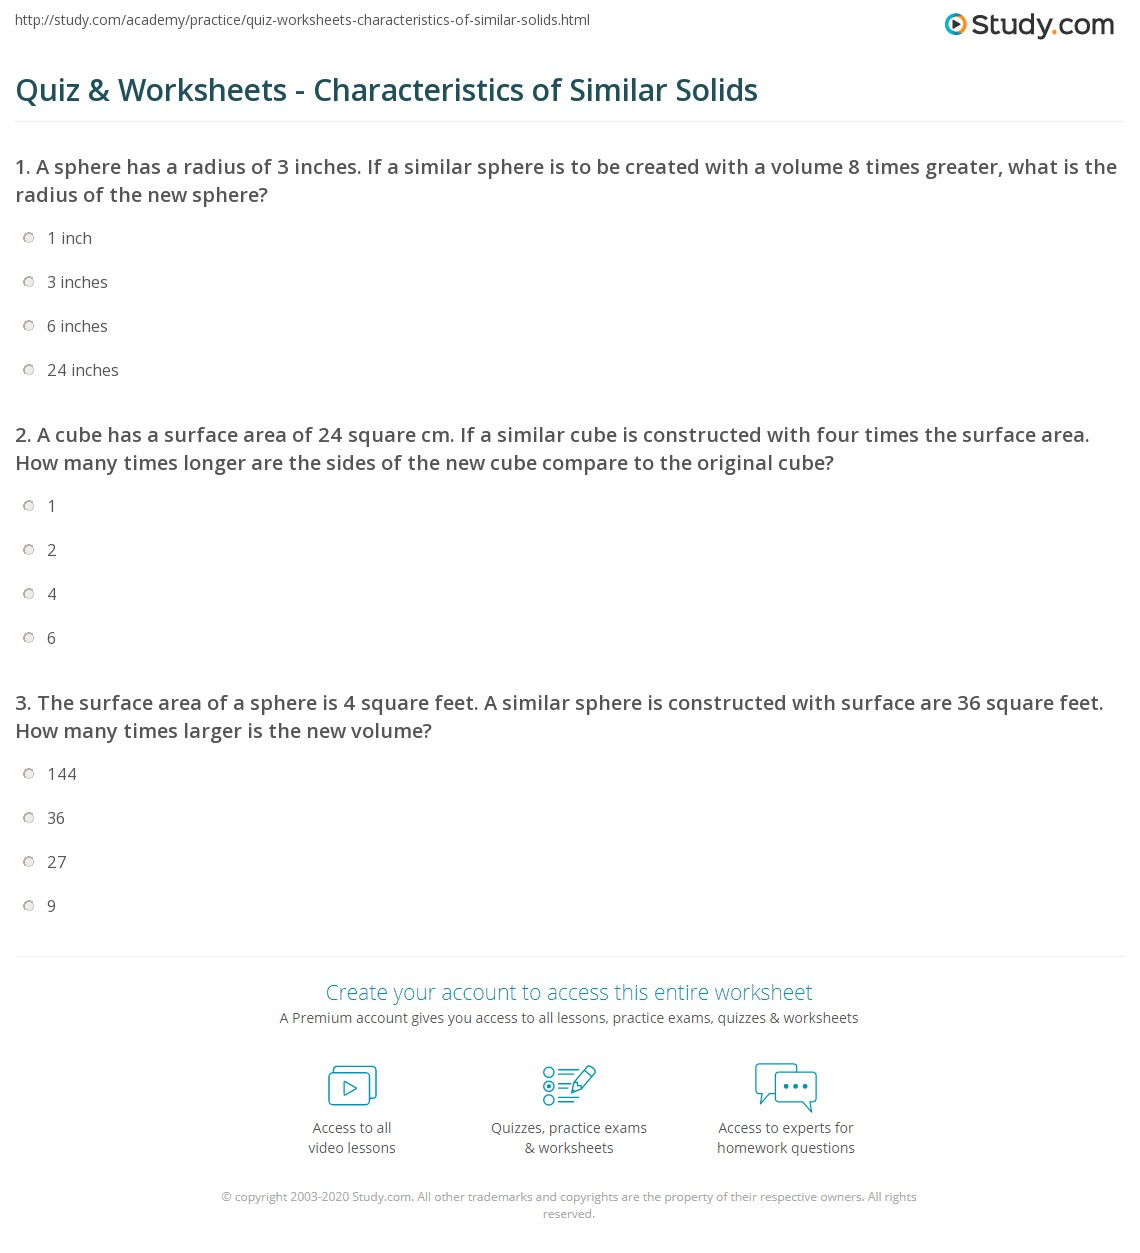 worksheet Volume Of Sphere Worksheet quiz worksheets characteristics of similar solids study com 1 a cube has surface area 24 square cm if is constructed with four times the how many longe